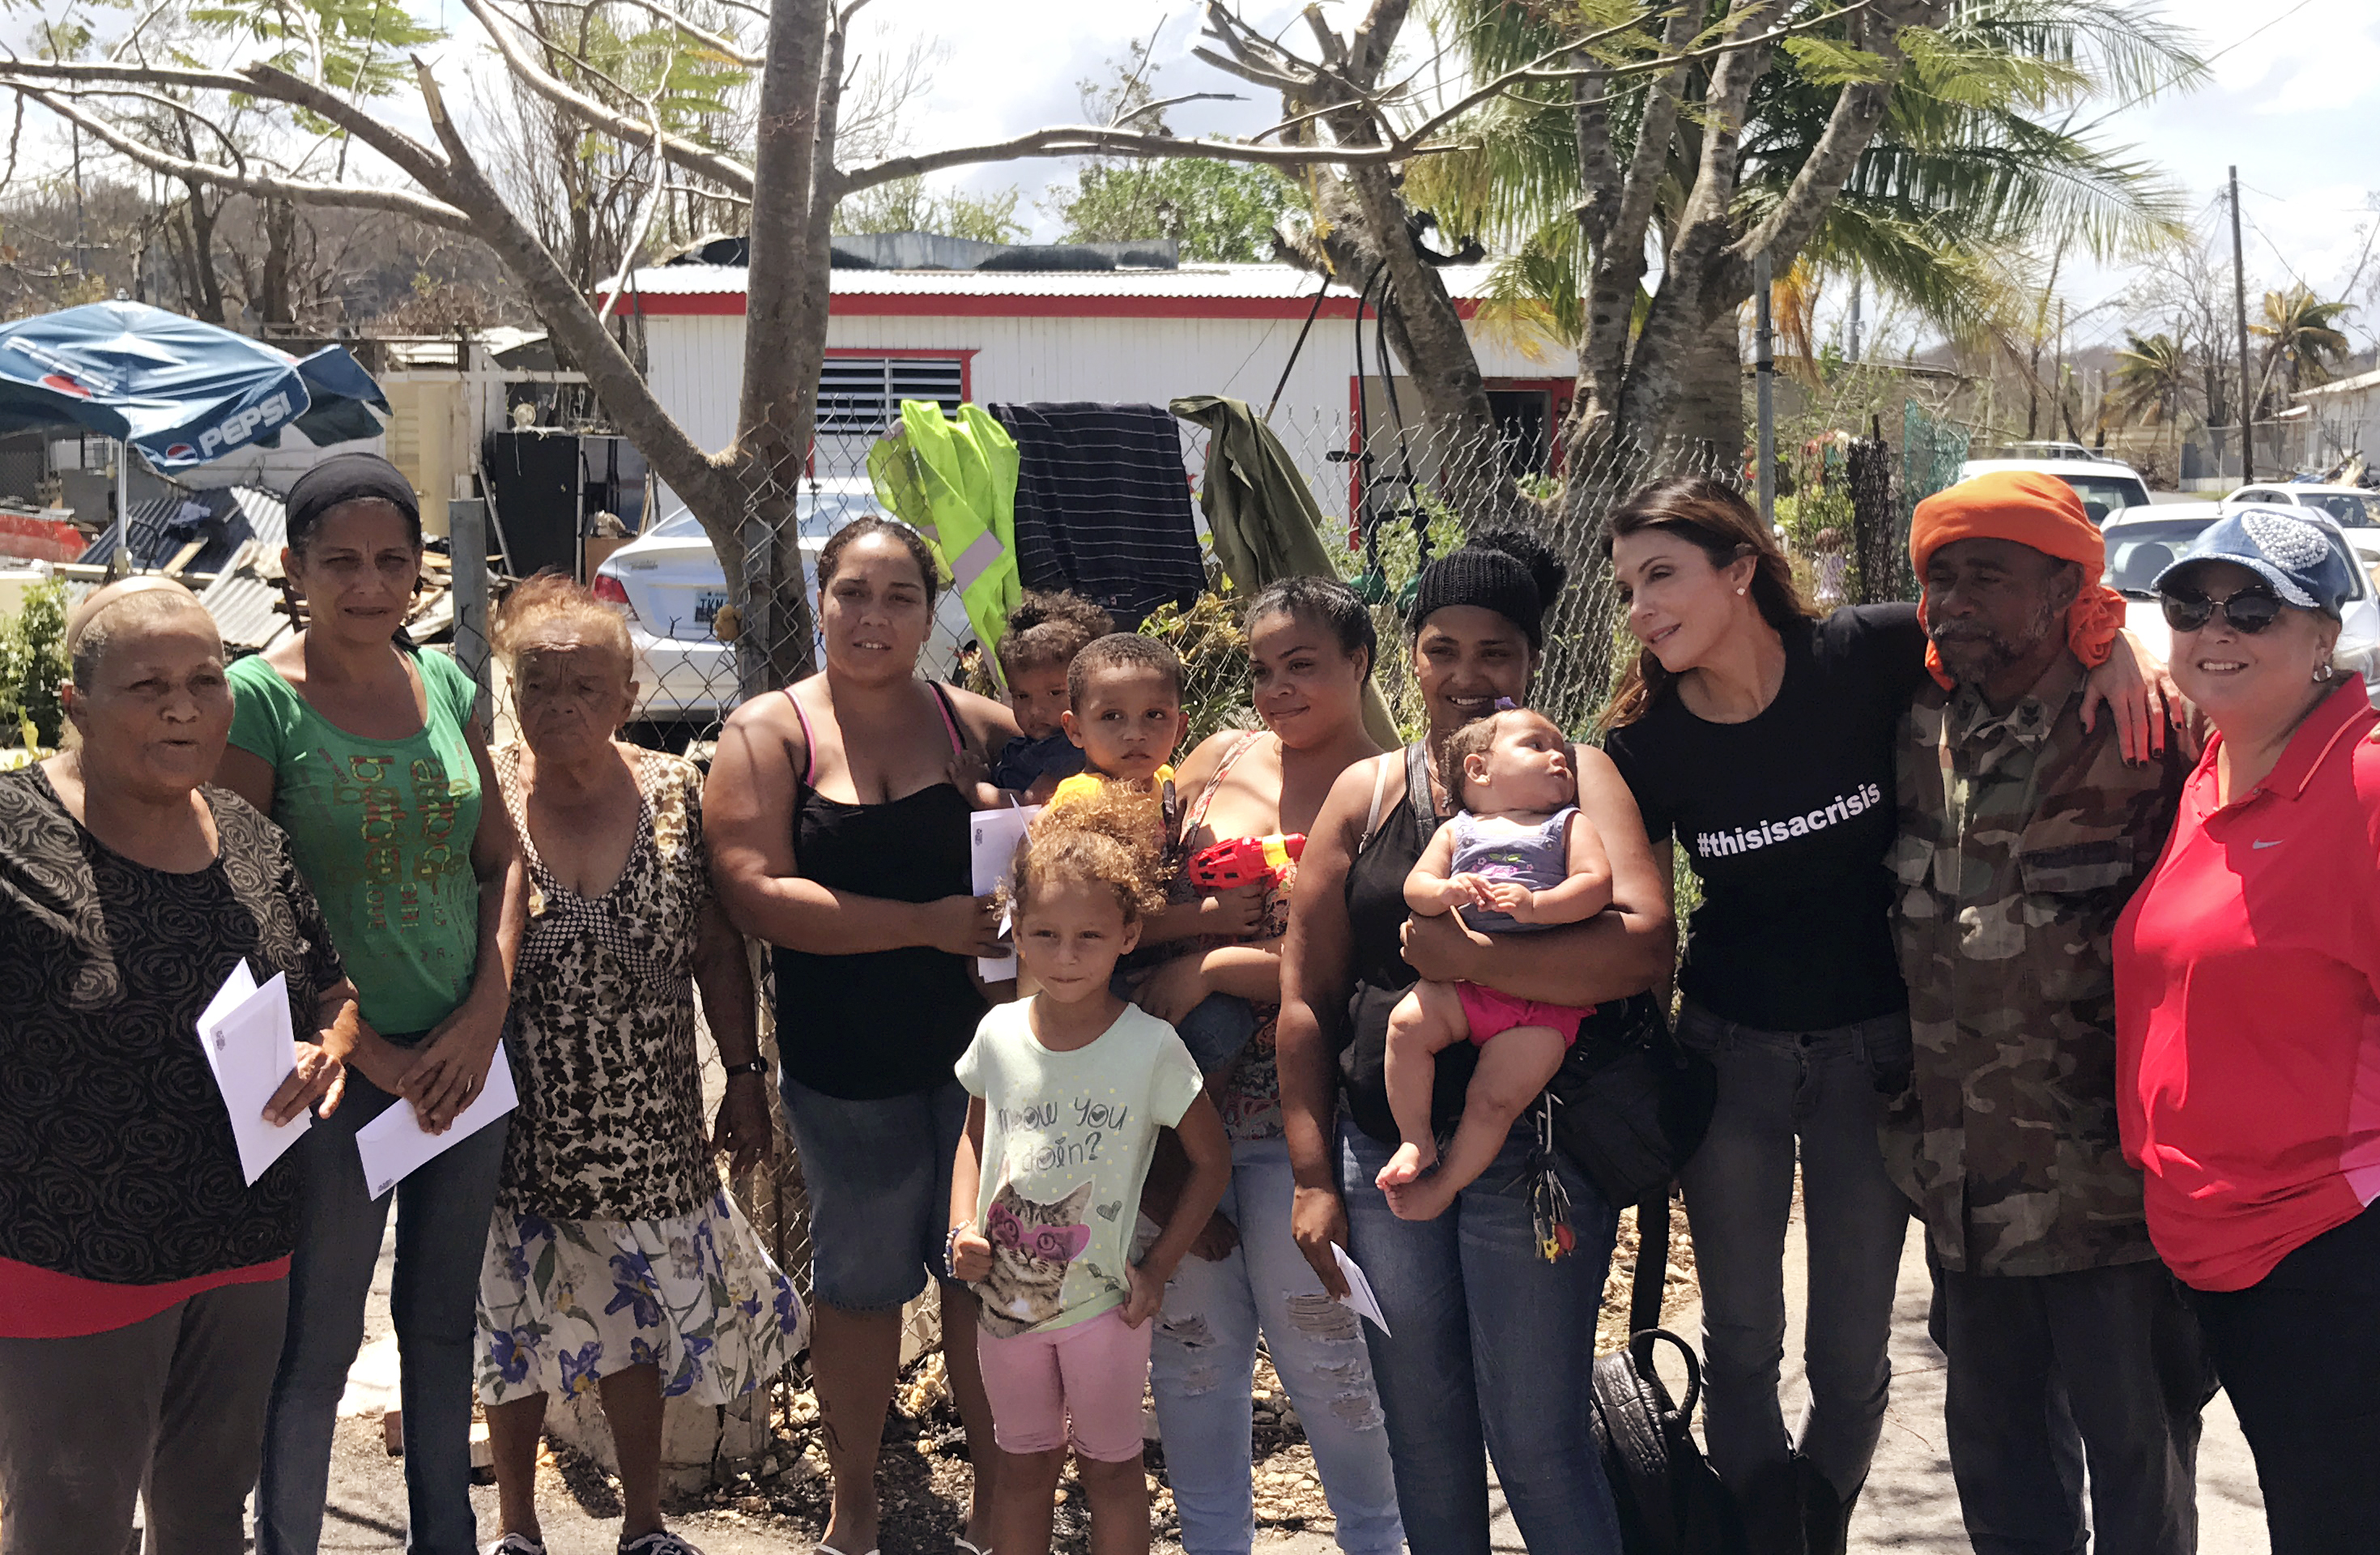 Frankel in 2017 in Puerto Rico, where she has spearheaded relief efforts through her charity